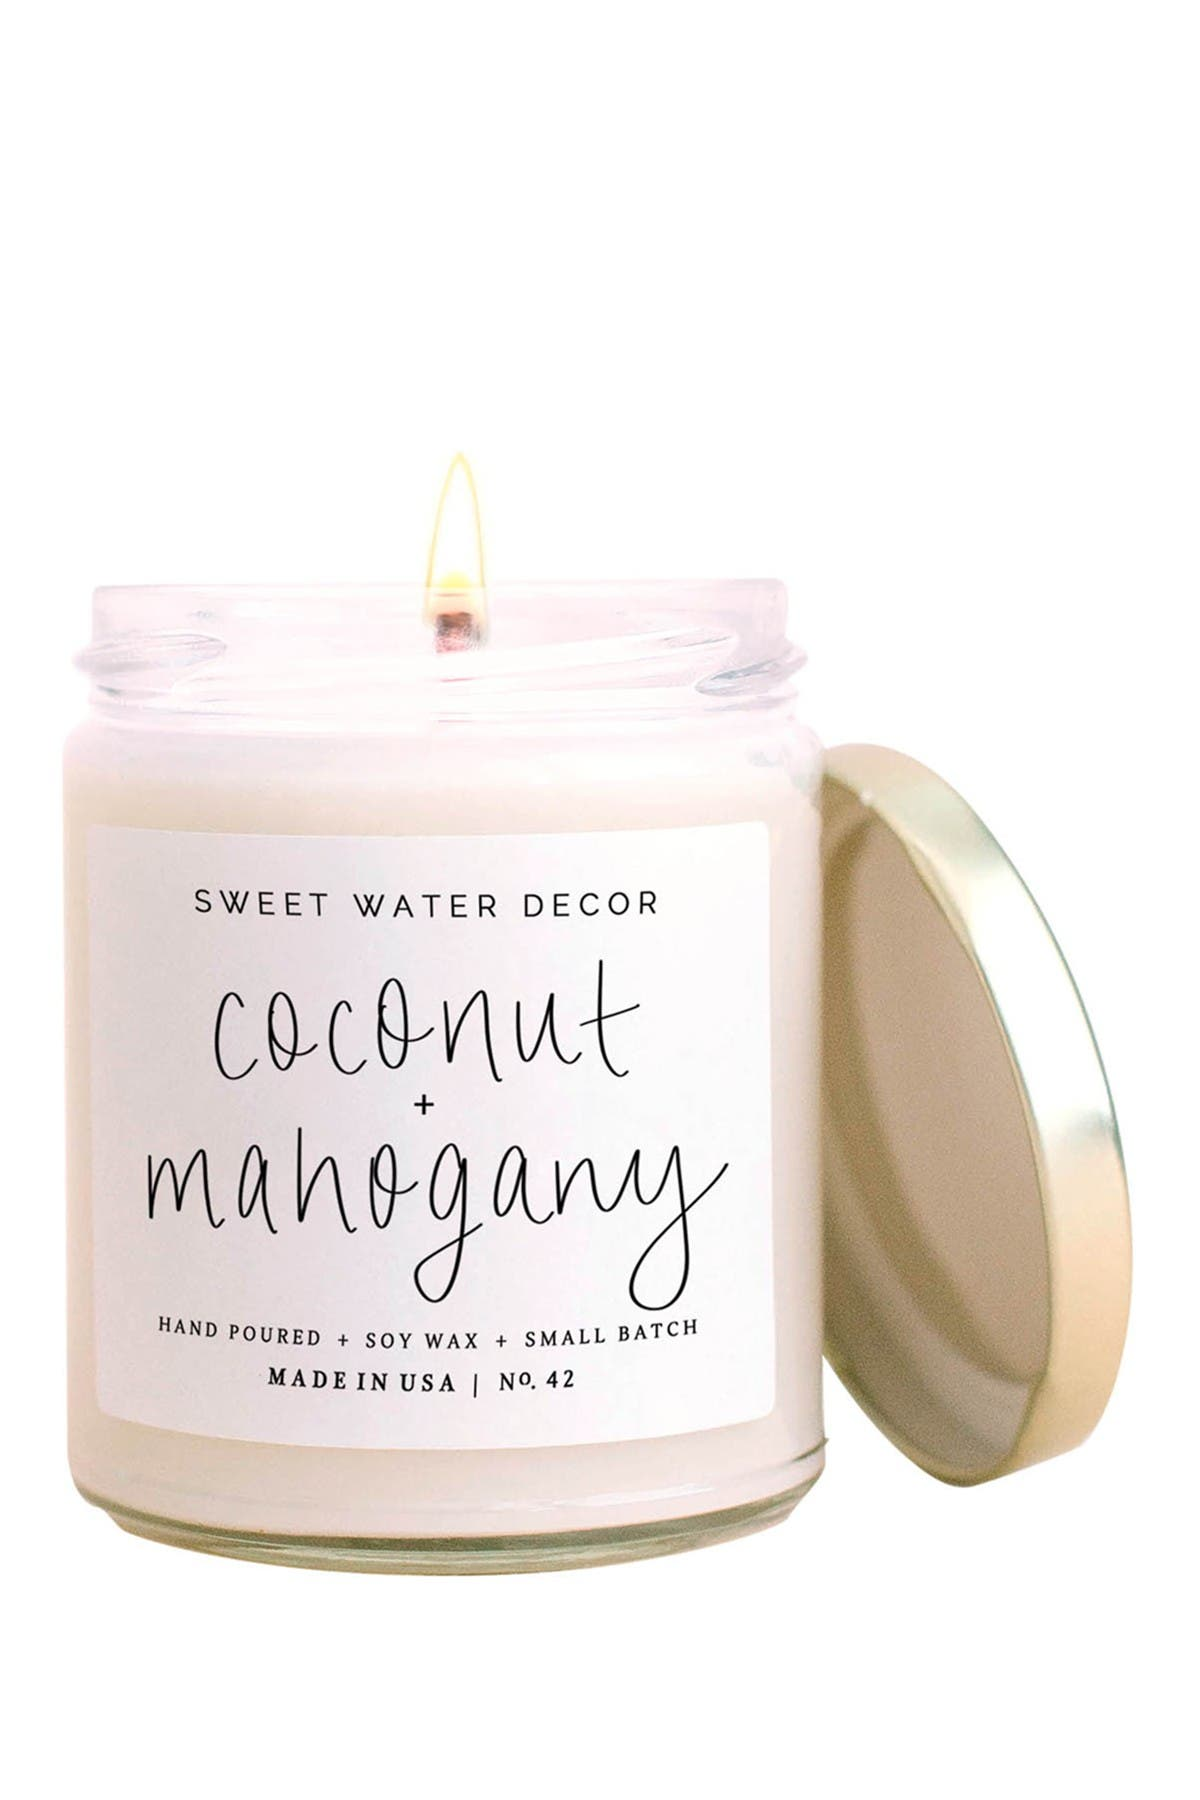 Image of SWEET WATER DECOR Coconut Mahogany 9 oz. Soy Candle - Set of 2